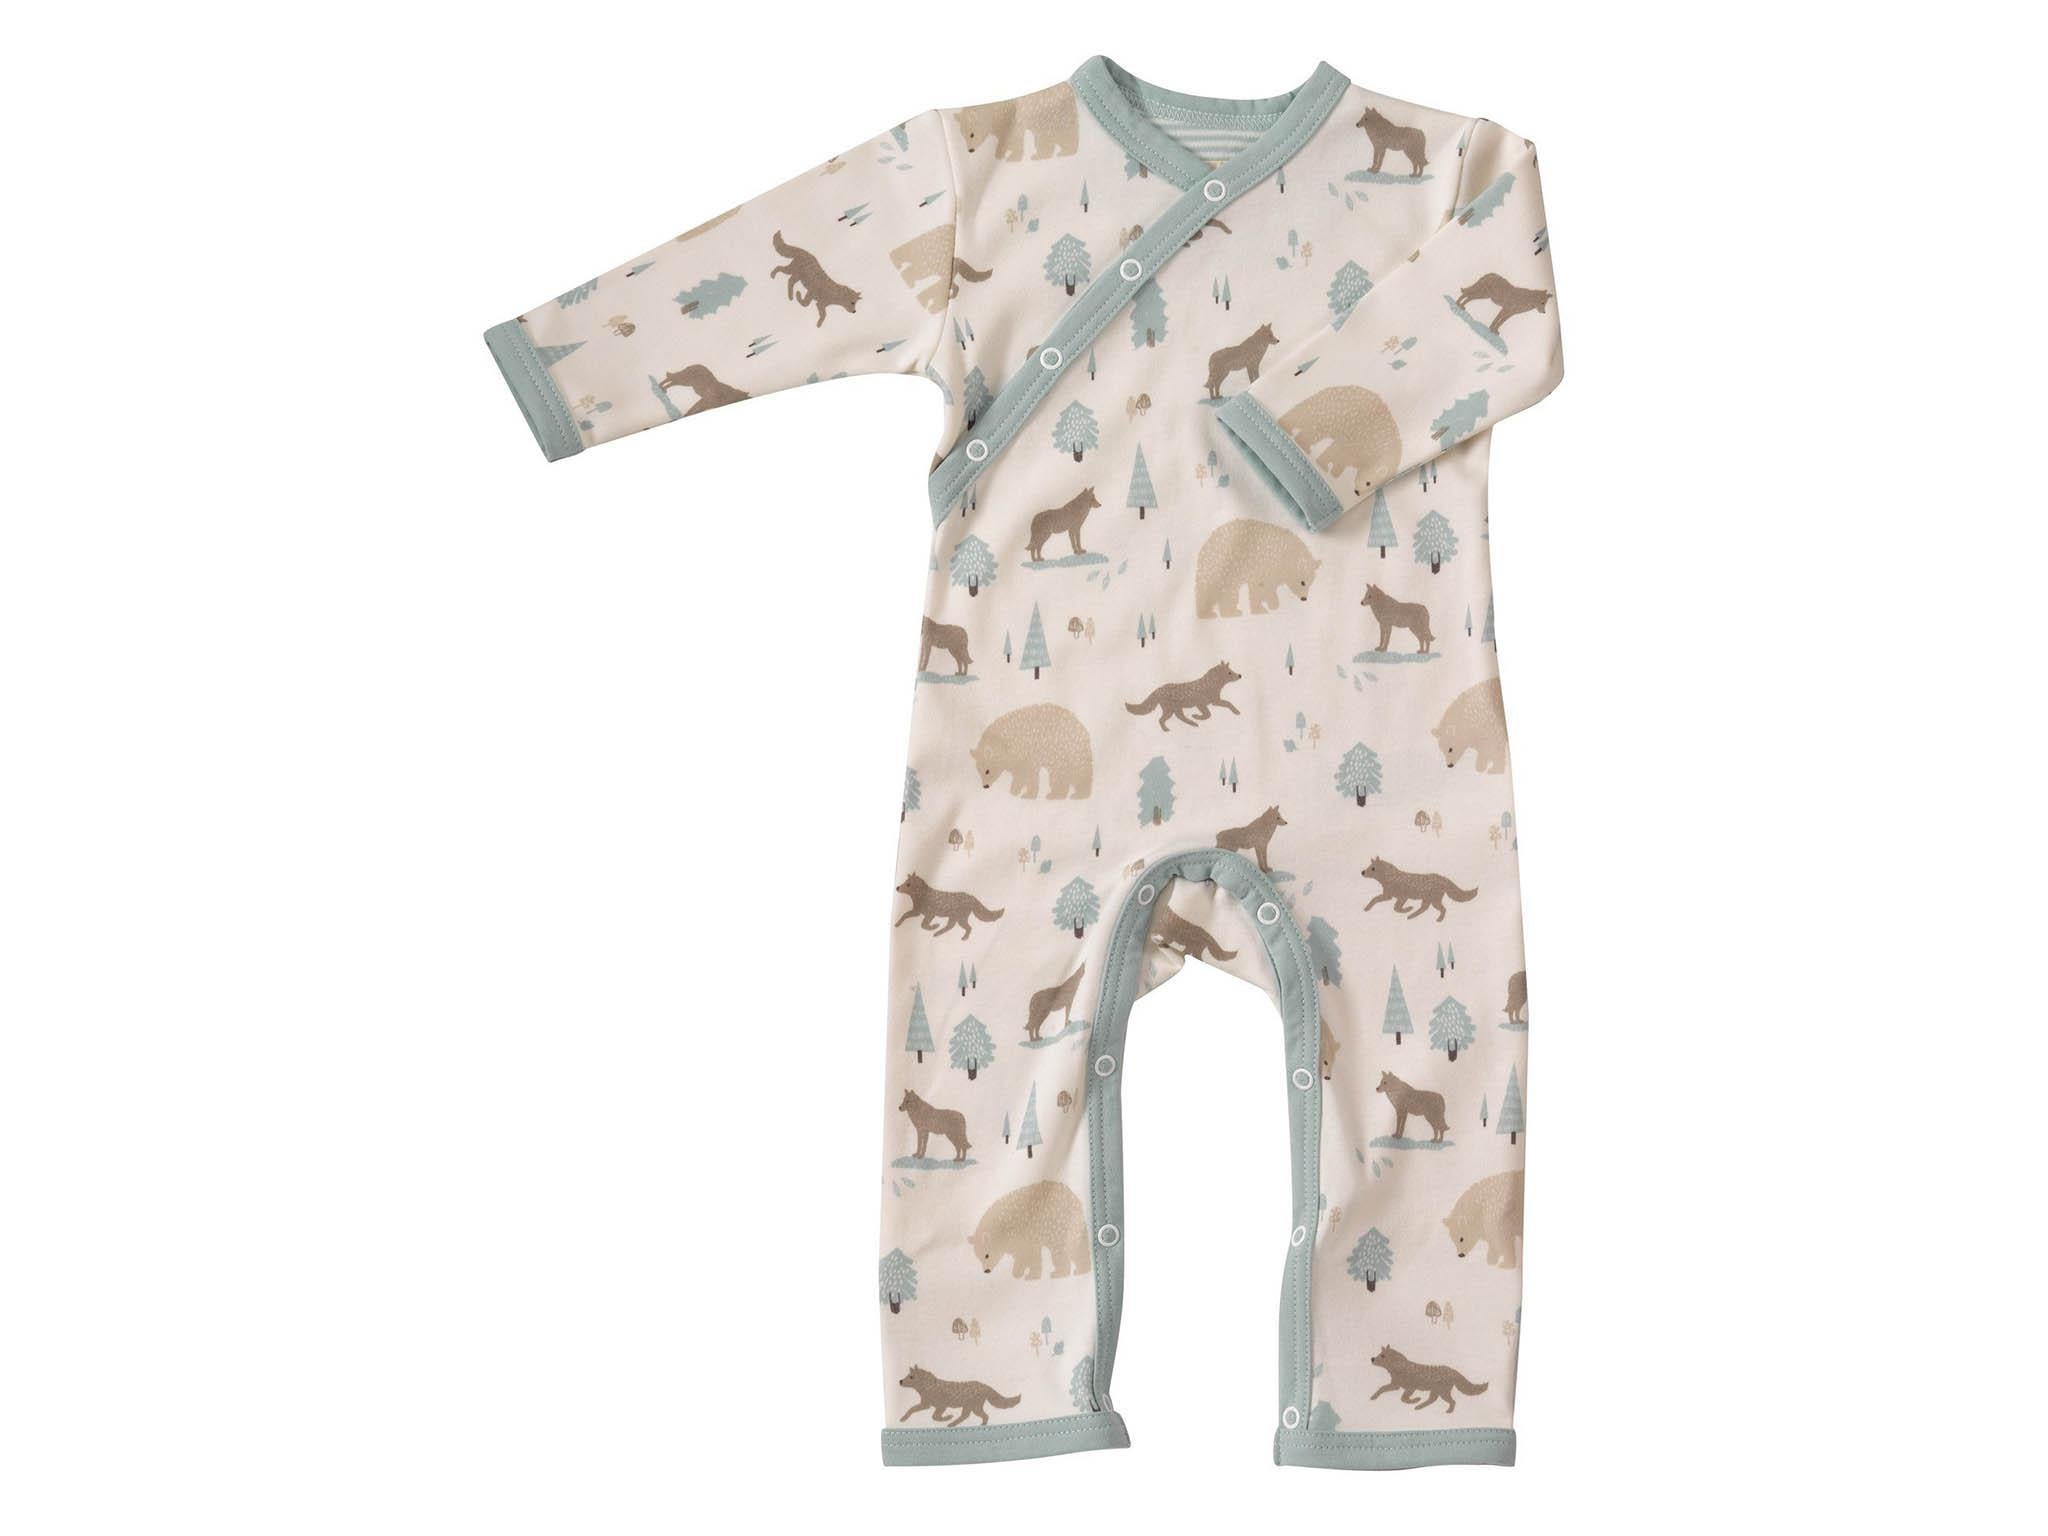 5cb3e4e71 Best organic babygrows that are soft, chemical free and good for ...